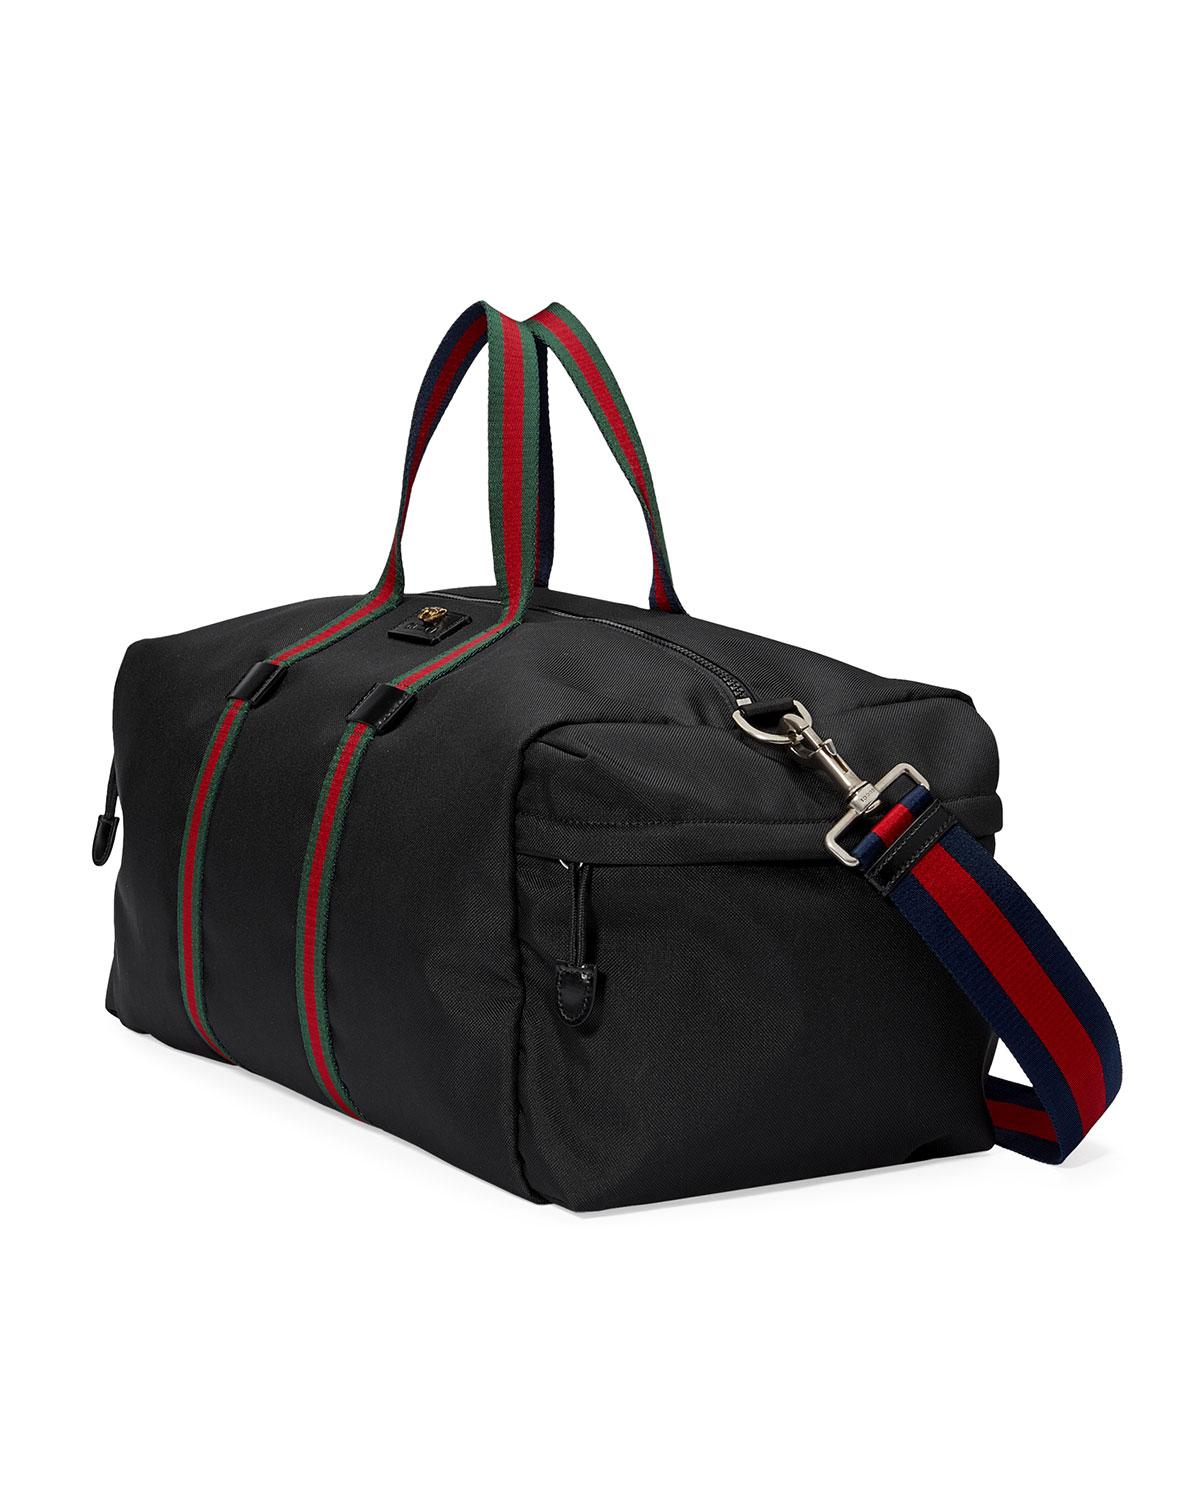 0d29c698ff1a Lyst - Gucci Technical Canvas Duffle Bag in Black for Men